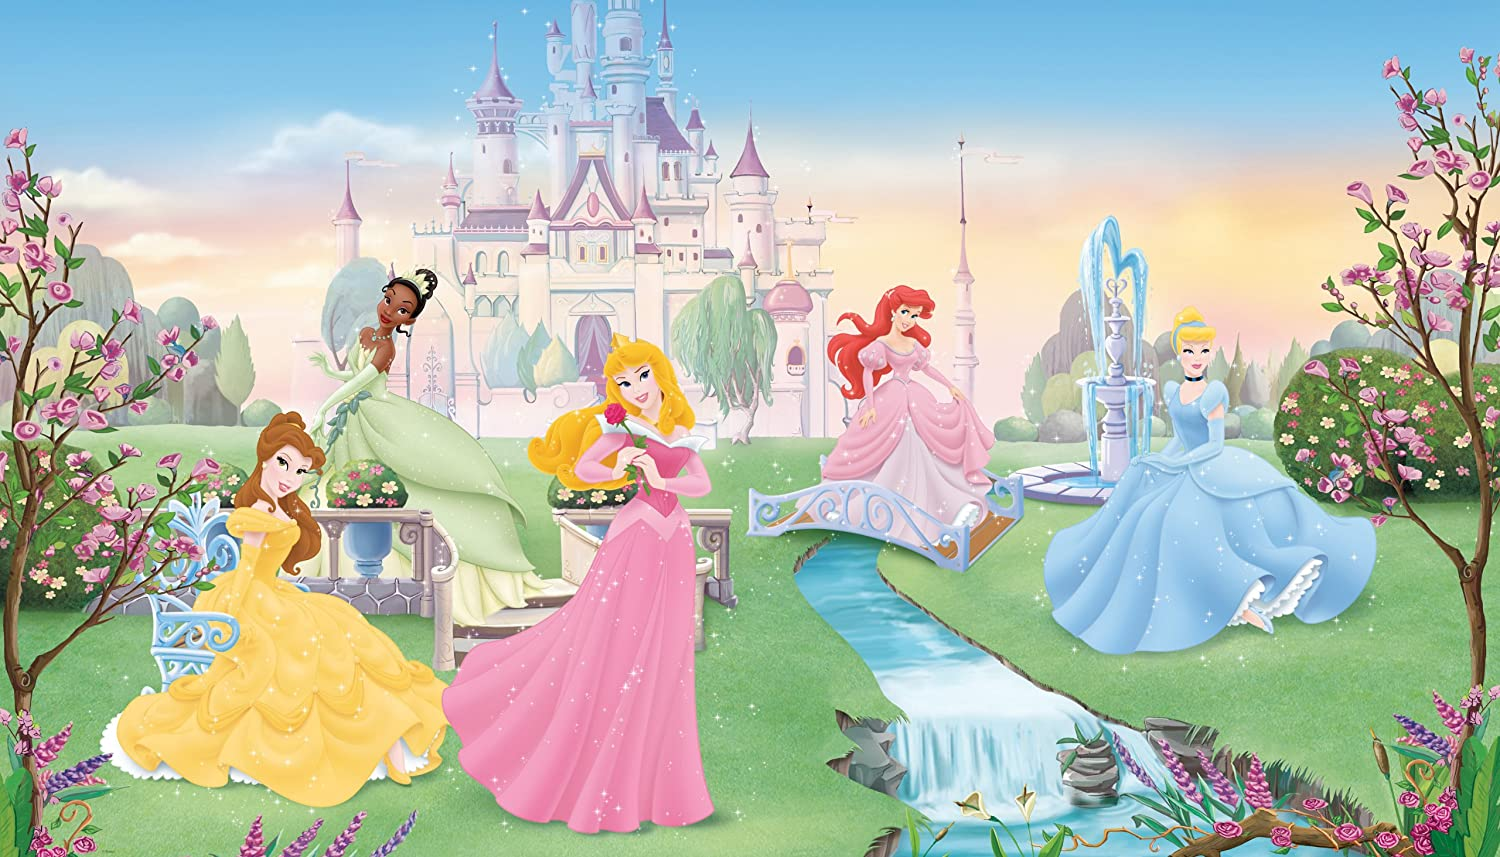 Amazon.com: RoomMates JL1228M Disney Dancing Princess 6 Foot By 10.5 Foot  Prepasted Wall Mural: Home Improvement Part 21